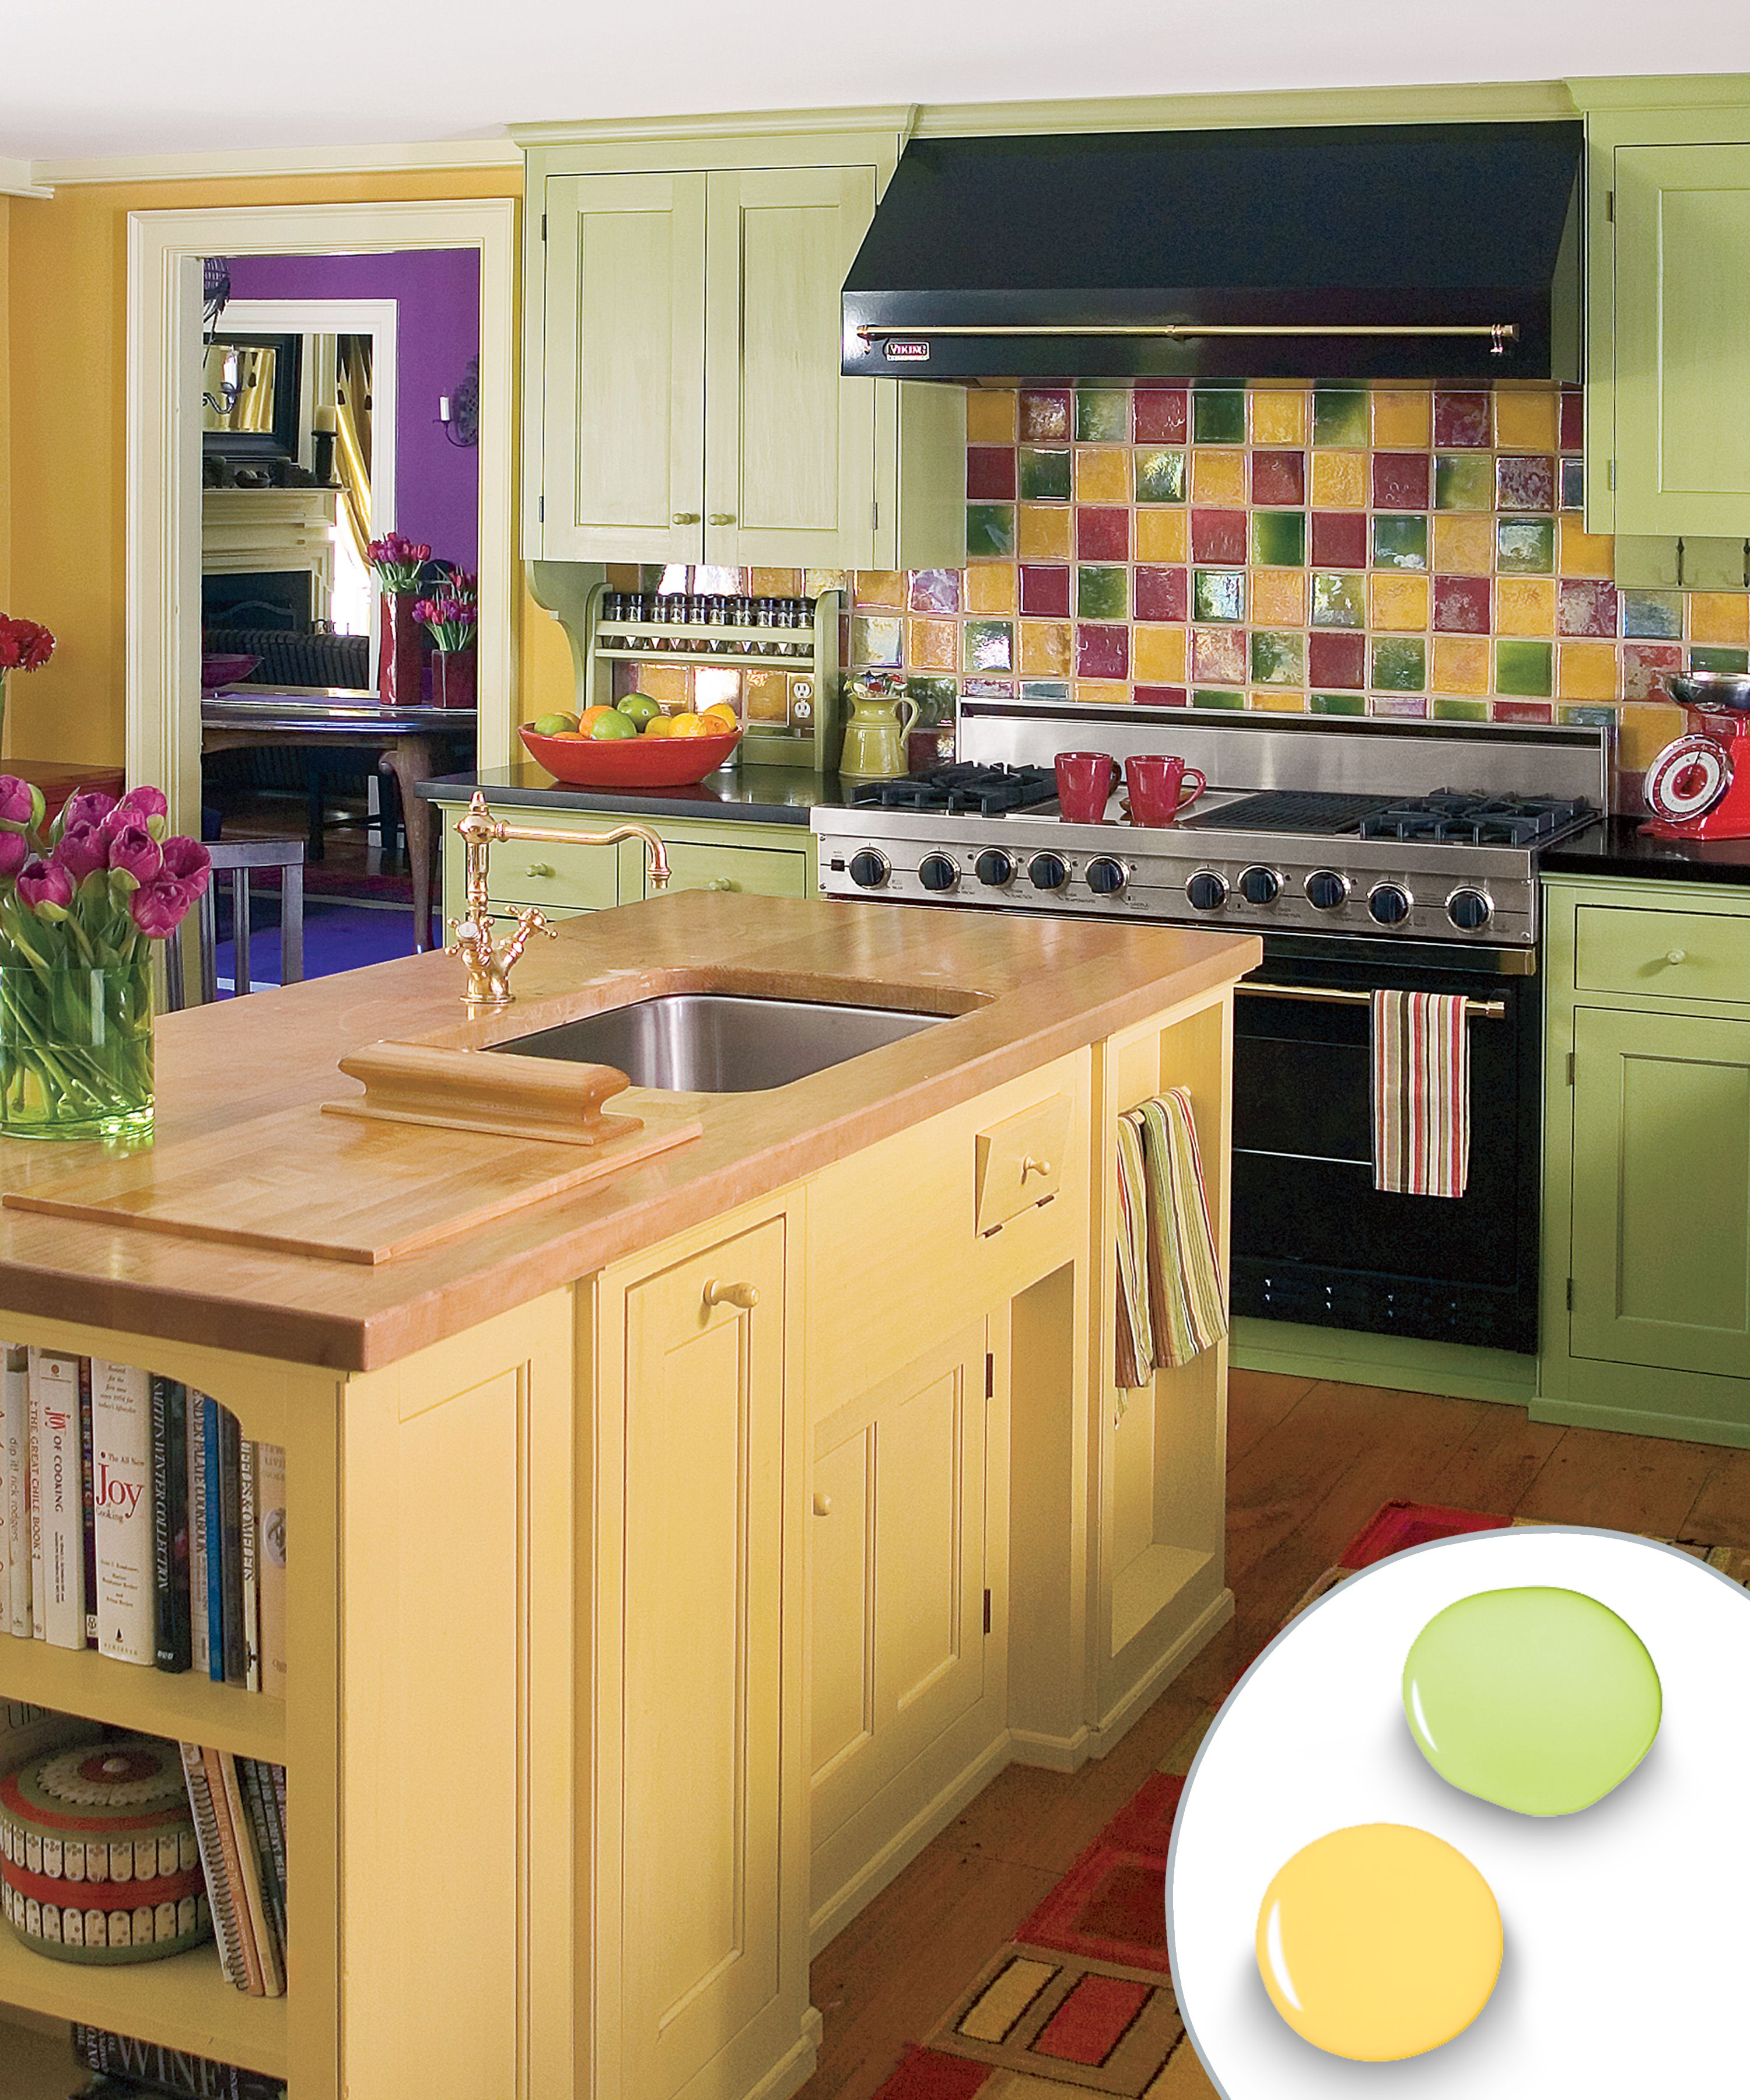 12 kitchen cabinet color combos that really cook kitchen cabinet colors kitchen cabinet on kitchen cabinets color combination id=18222